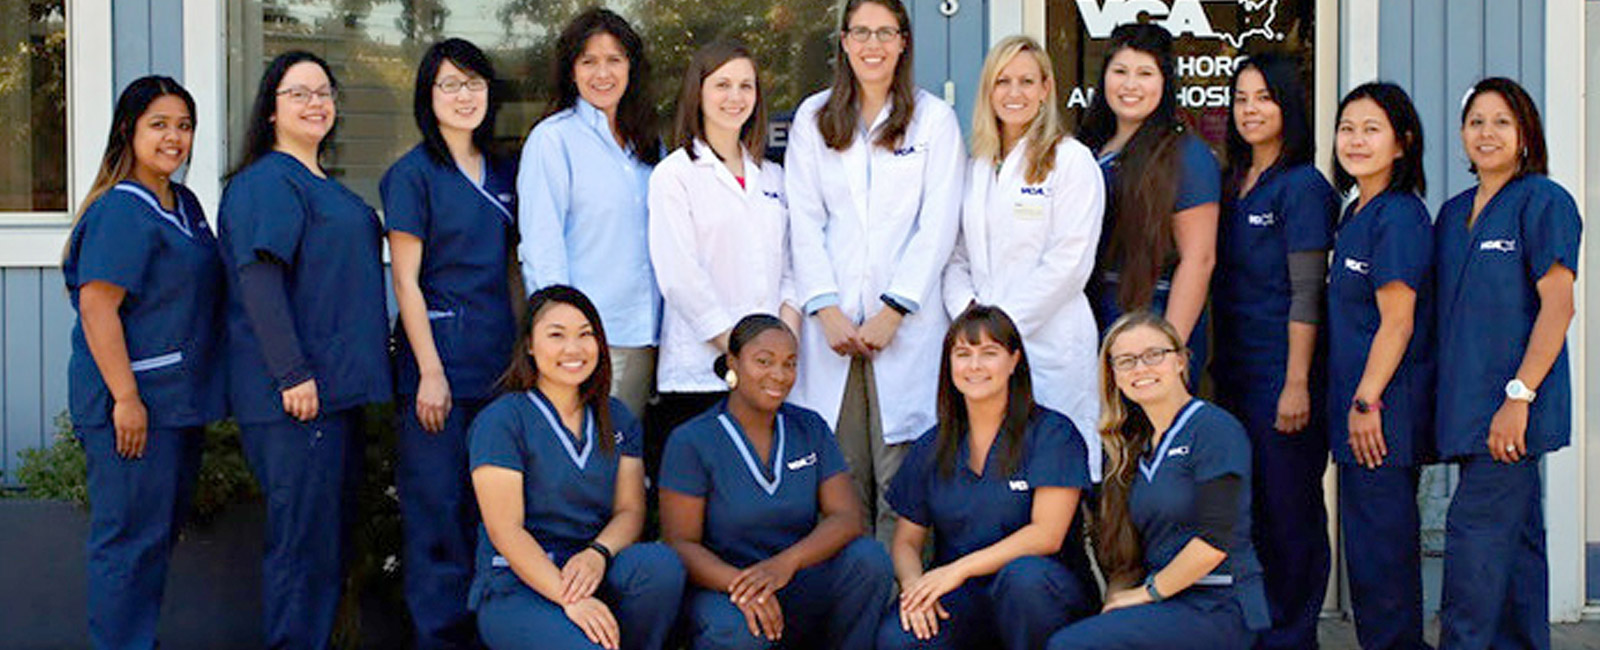 Homepage Team Picture of VCA Bayshore Animal Hospital